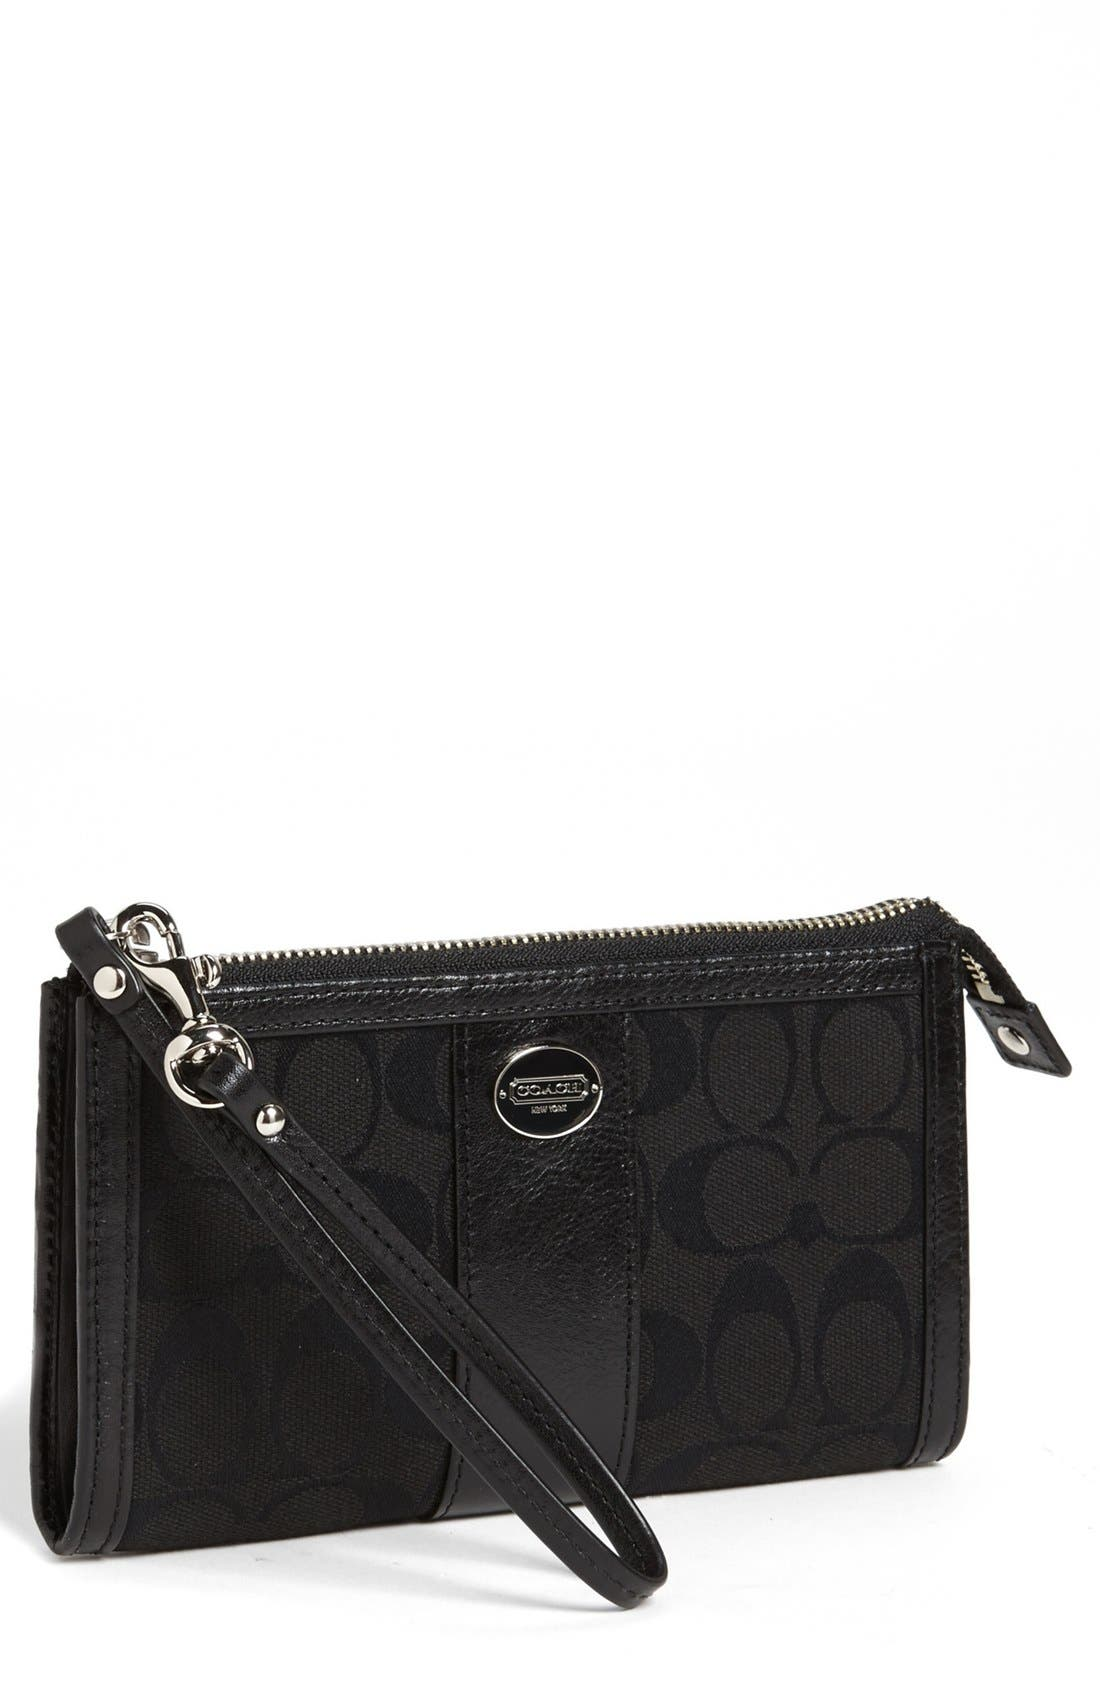 Main Image - COACH 'Signature - Zippy' Wallet